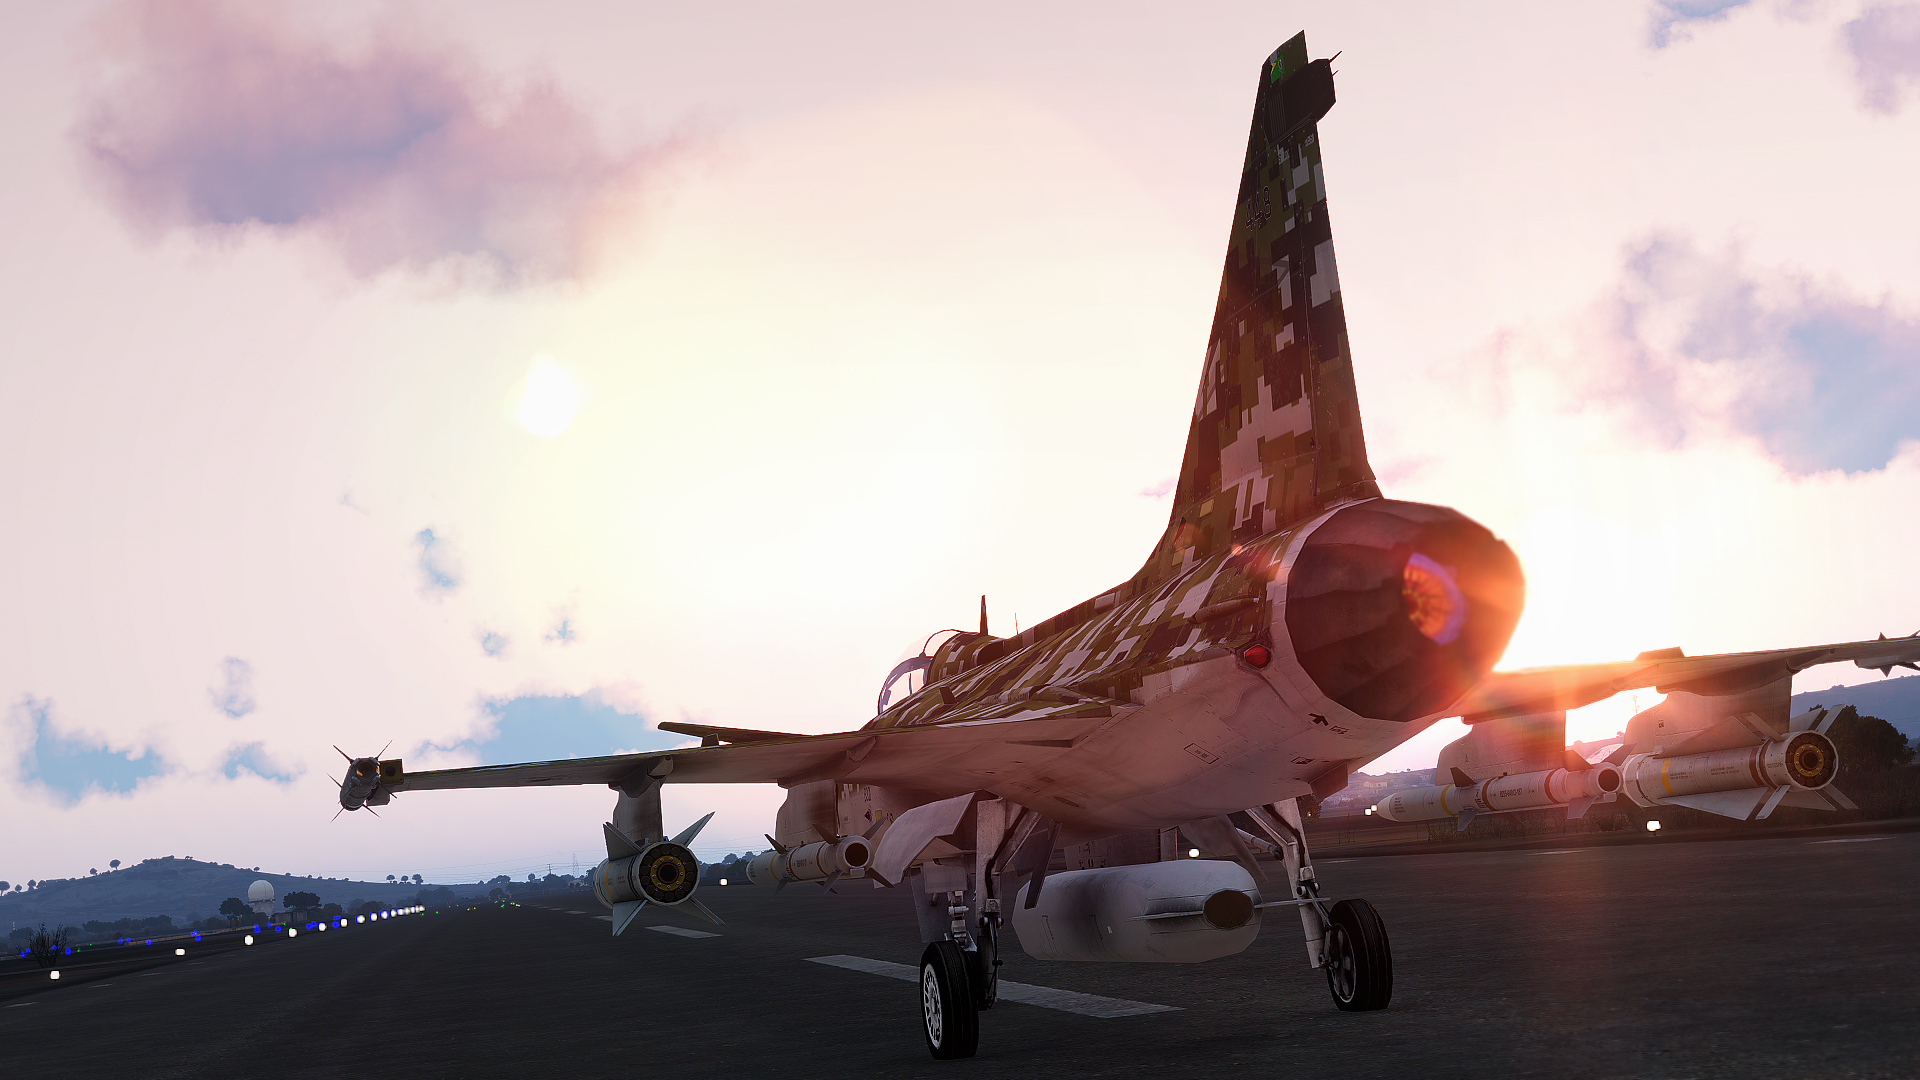 Oprep Sensor Overhaul Dev Hub Arma 3 Red Led Fighter Pilot Toggle Switch In This Wed Like To Introduce What We Call The Do That Well Take A Look At 5 Types Of And Discuss Their Role